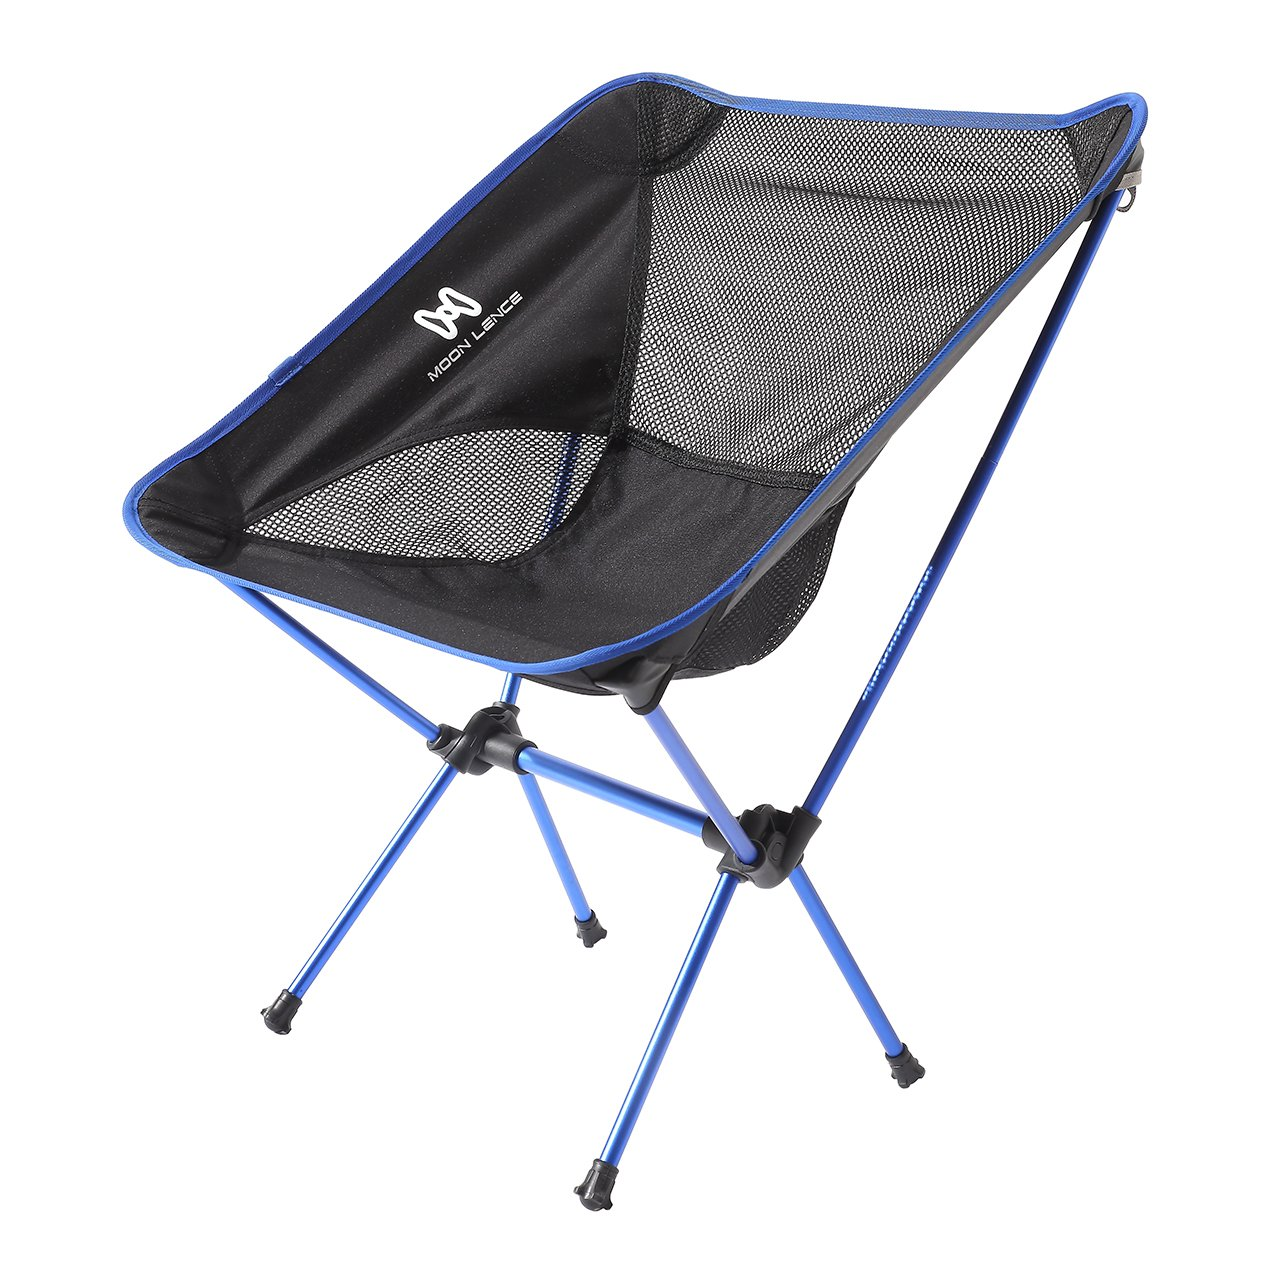 Best Camping Chair Of 2018 Read This Reviews Before Buying